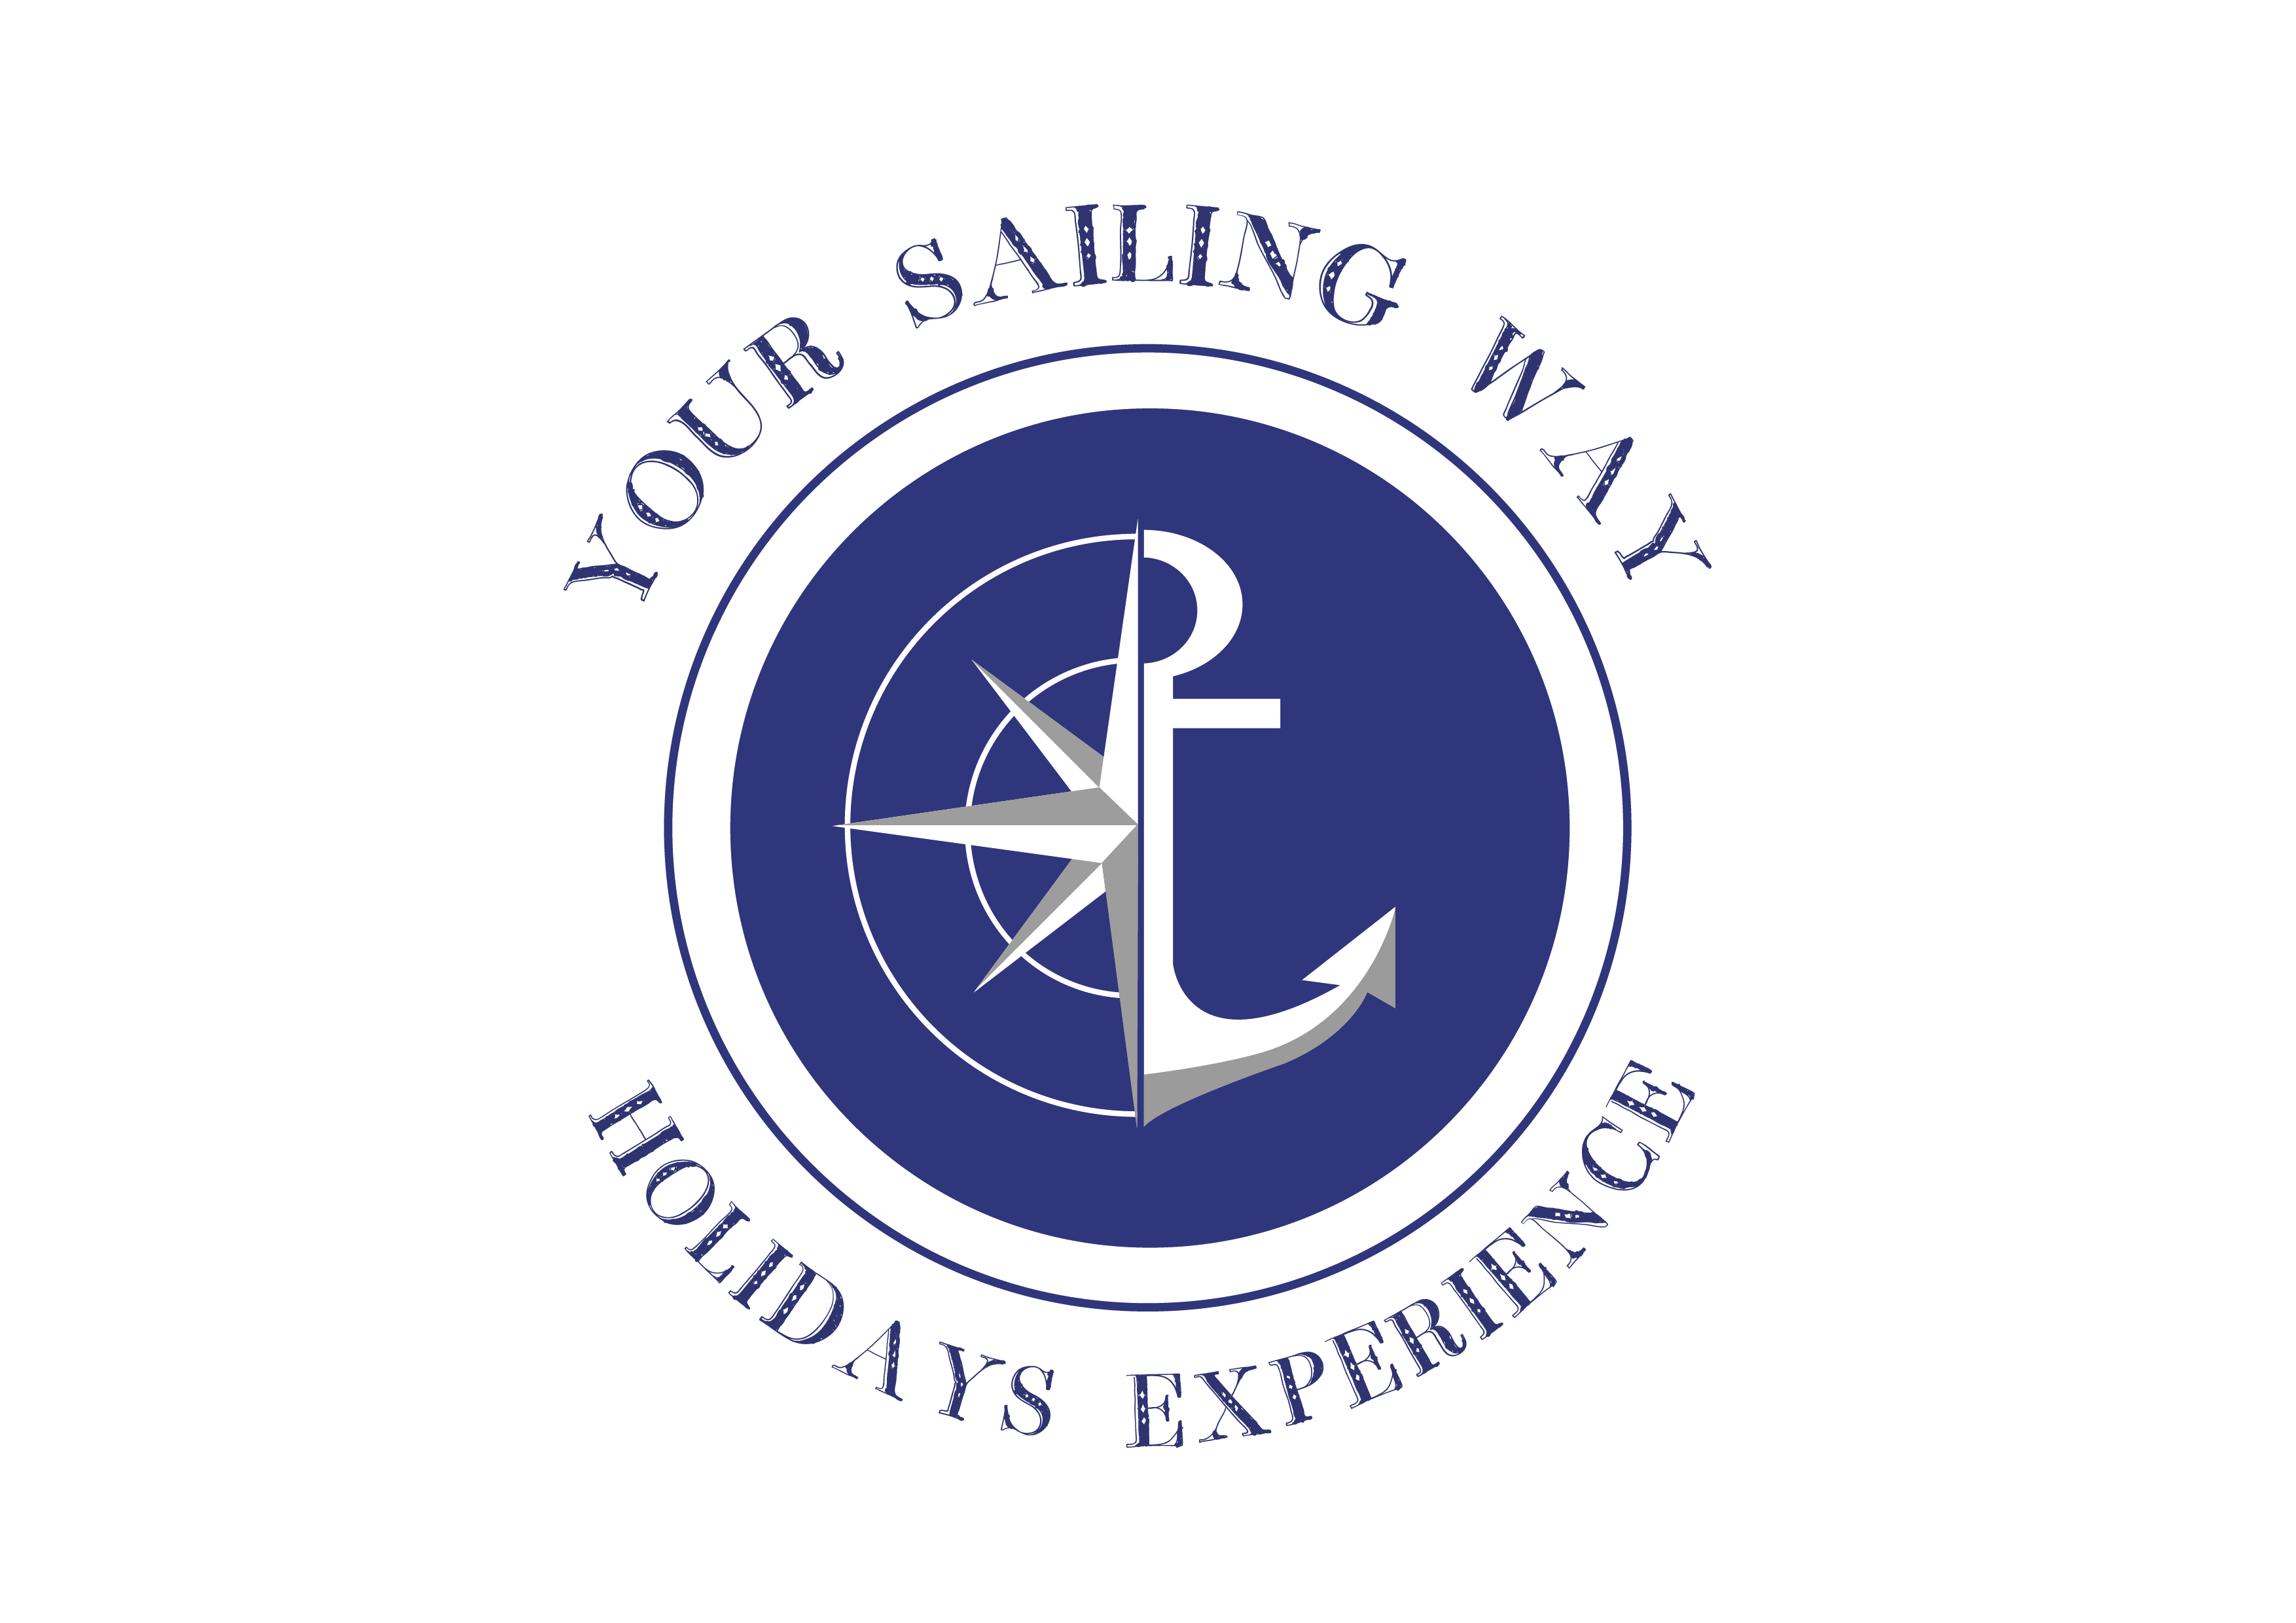 Your Sailing Way